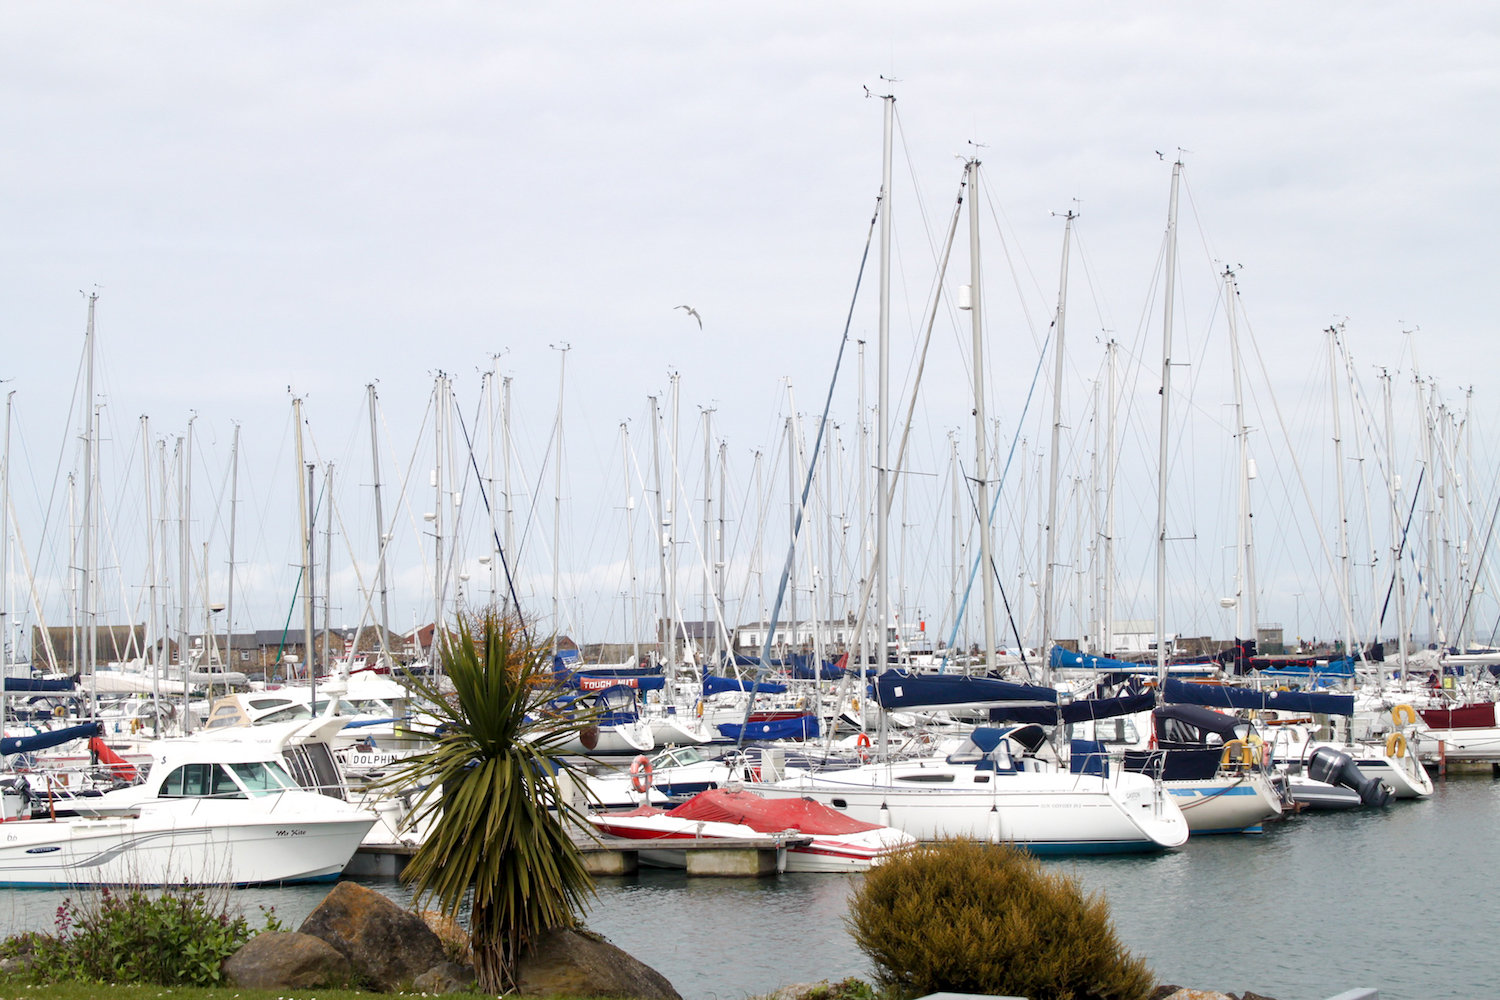 Boats in Howth harbor (Eat Me. Drink Me.)